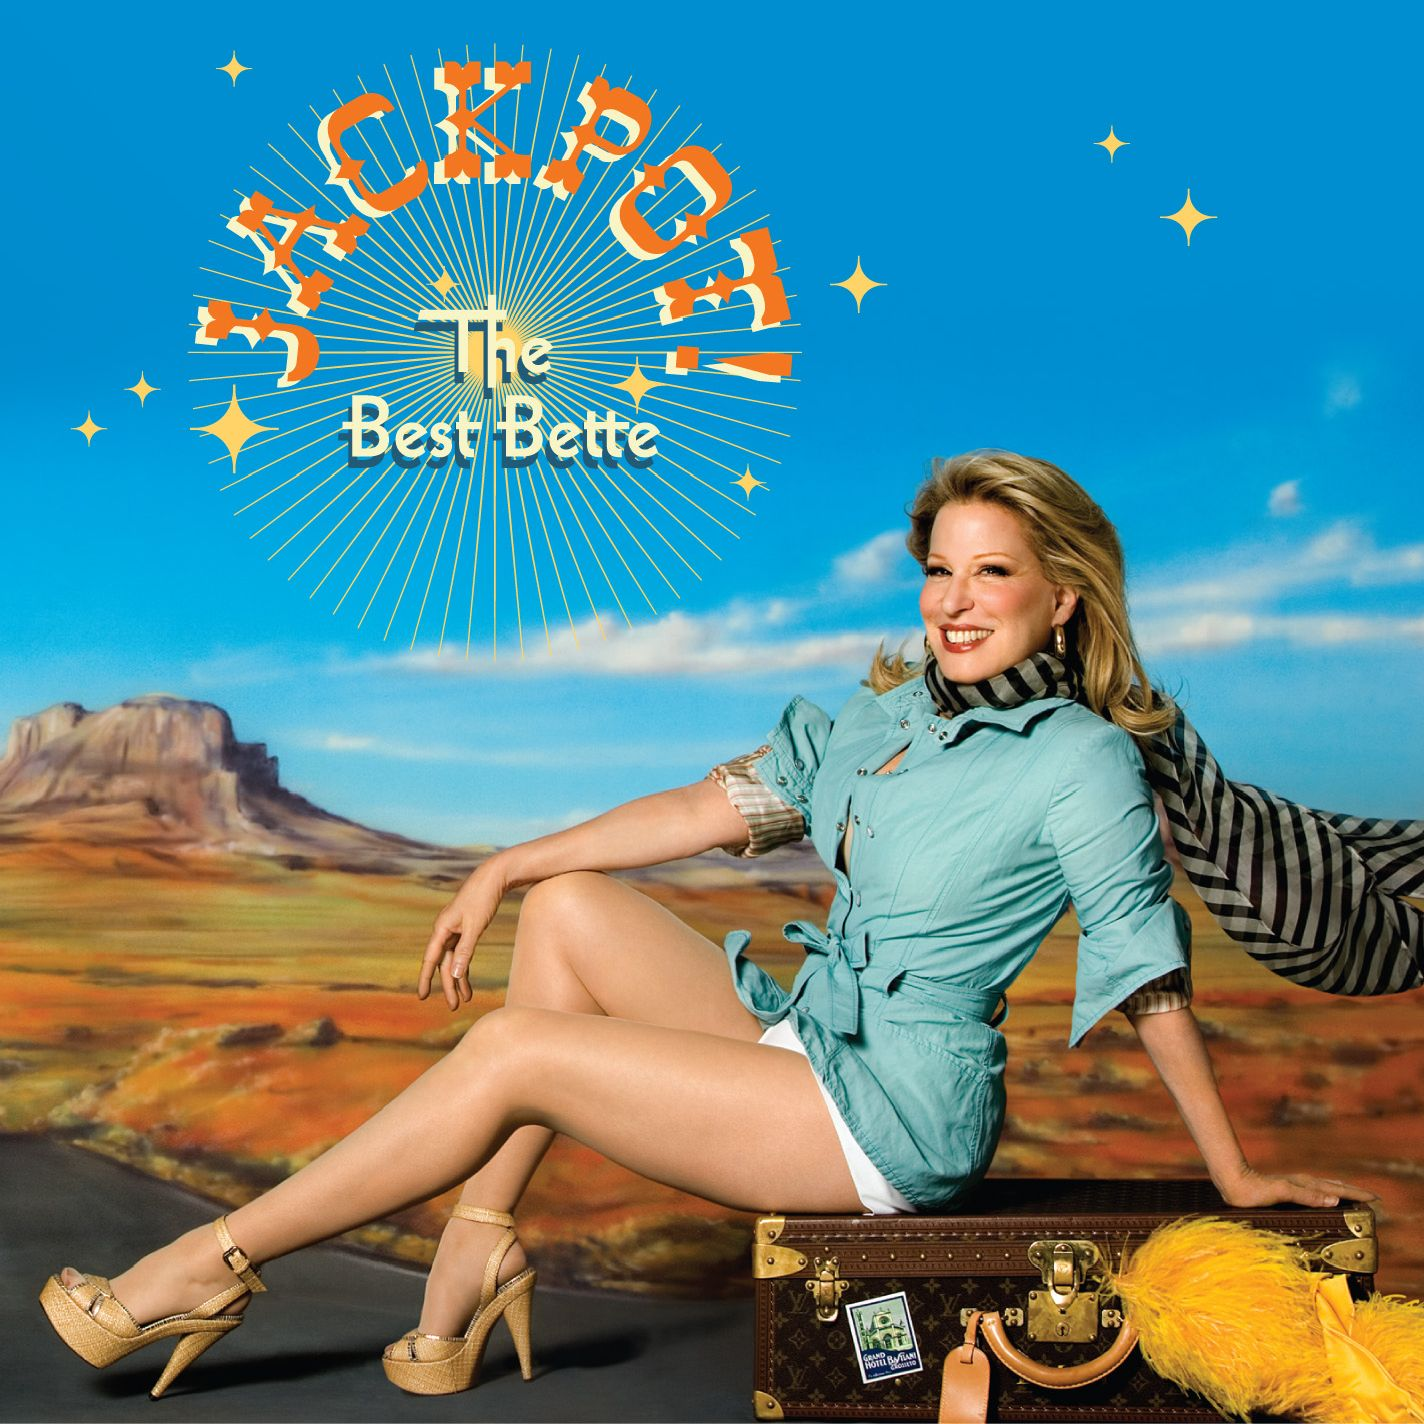 Bette Midler - Jackpot: The Best Bette album cover